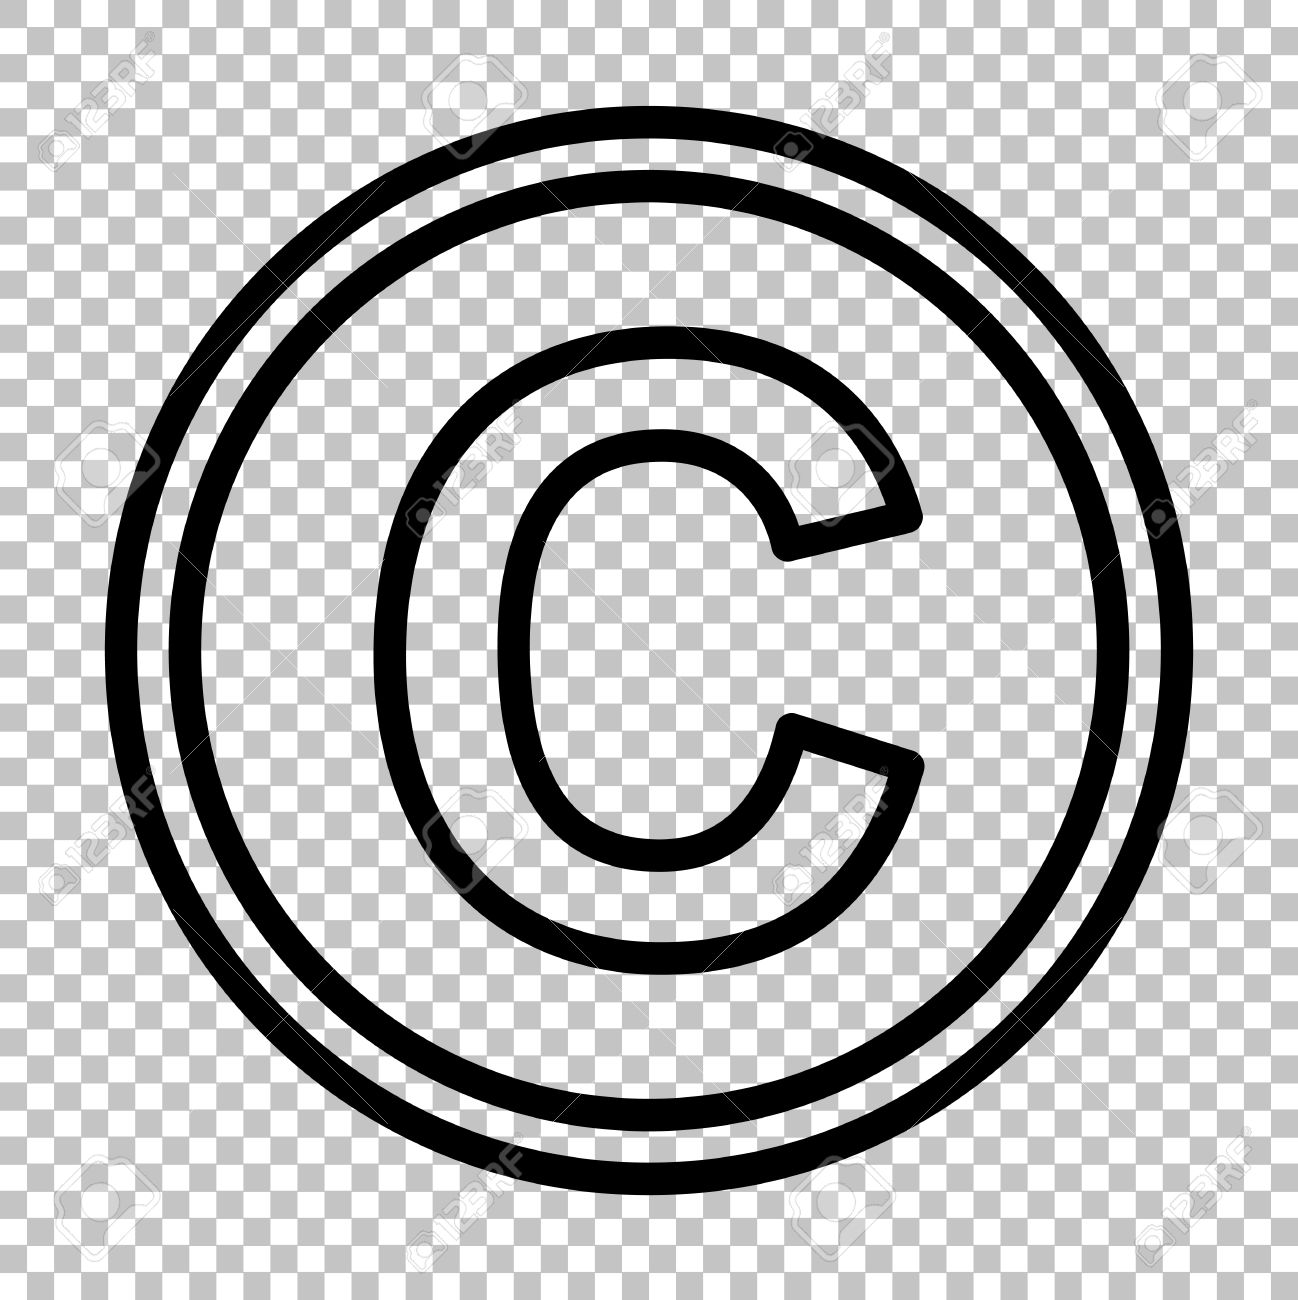 copyright sign line icon on transparent background royalty free Copyright Warning copyright sign line icon on transparent background stock vector 53561502